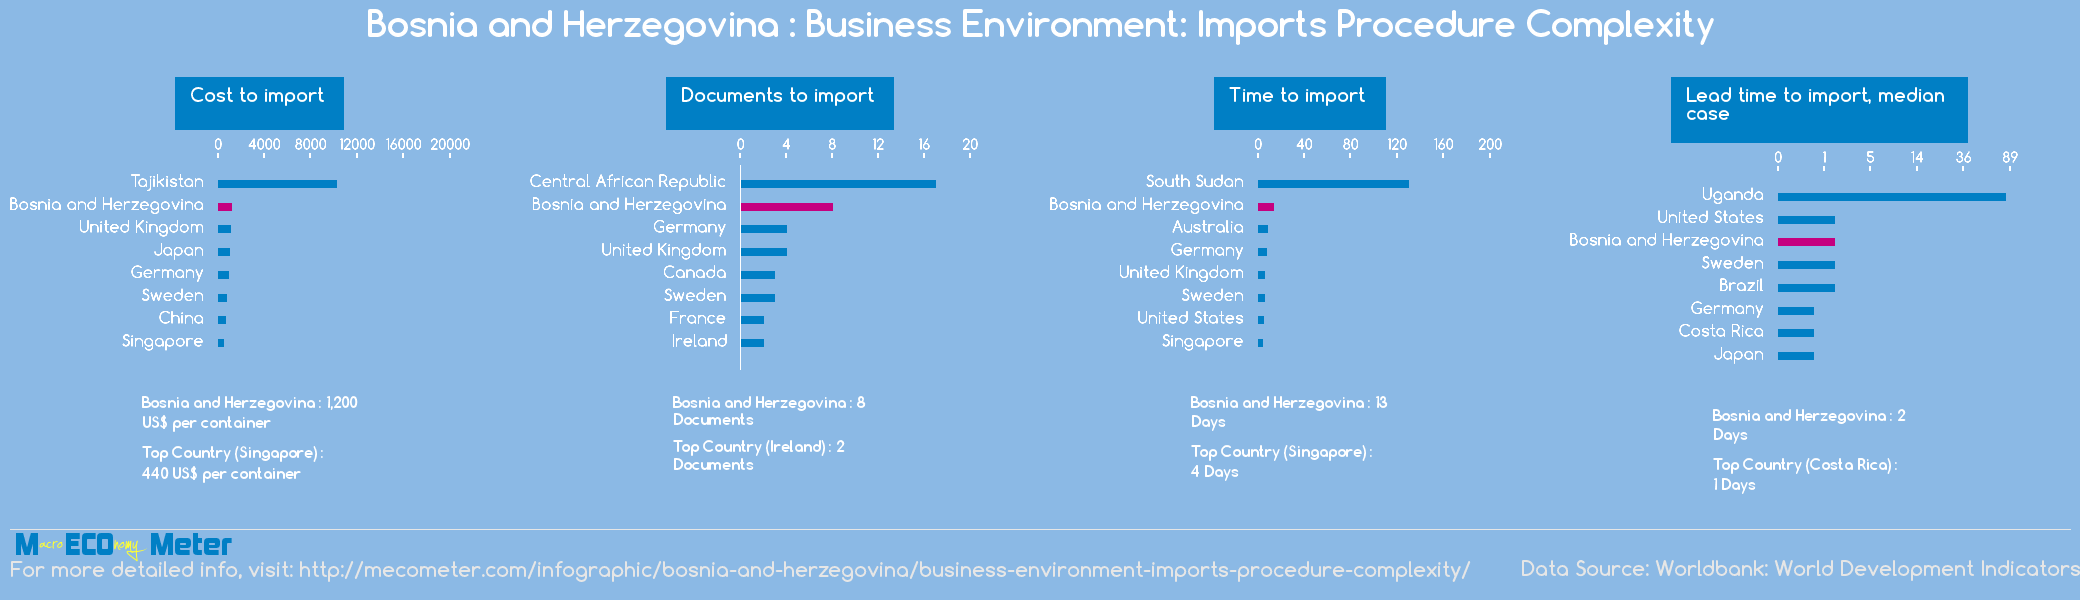 Bosnia and Herzegovina : Business Environment: Imports Procedure Complexity